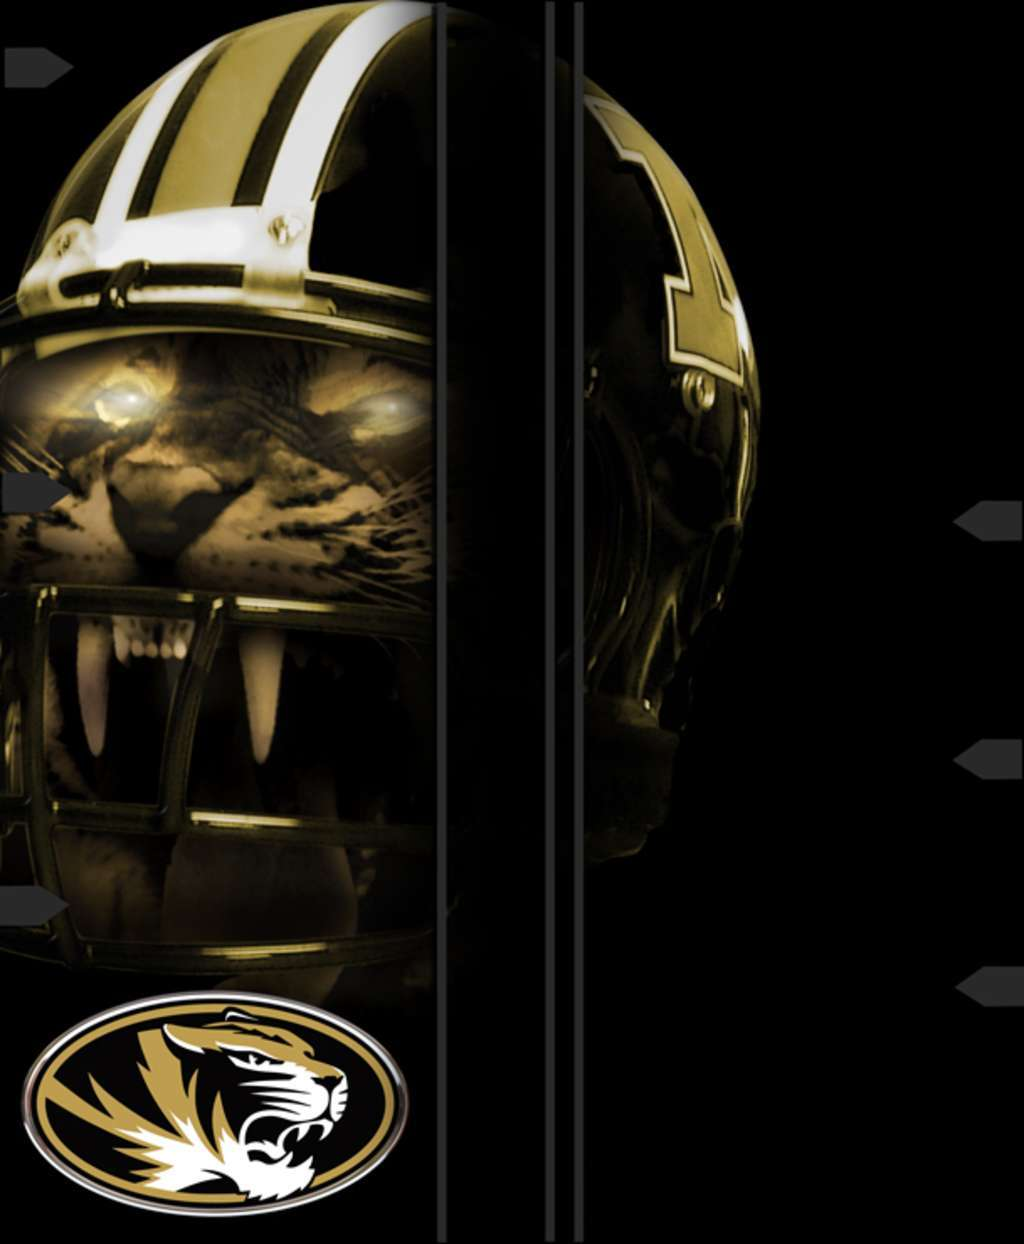 download mizzou tigers background [1024x1244] for your 1024x1244